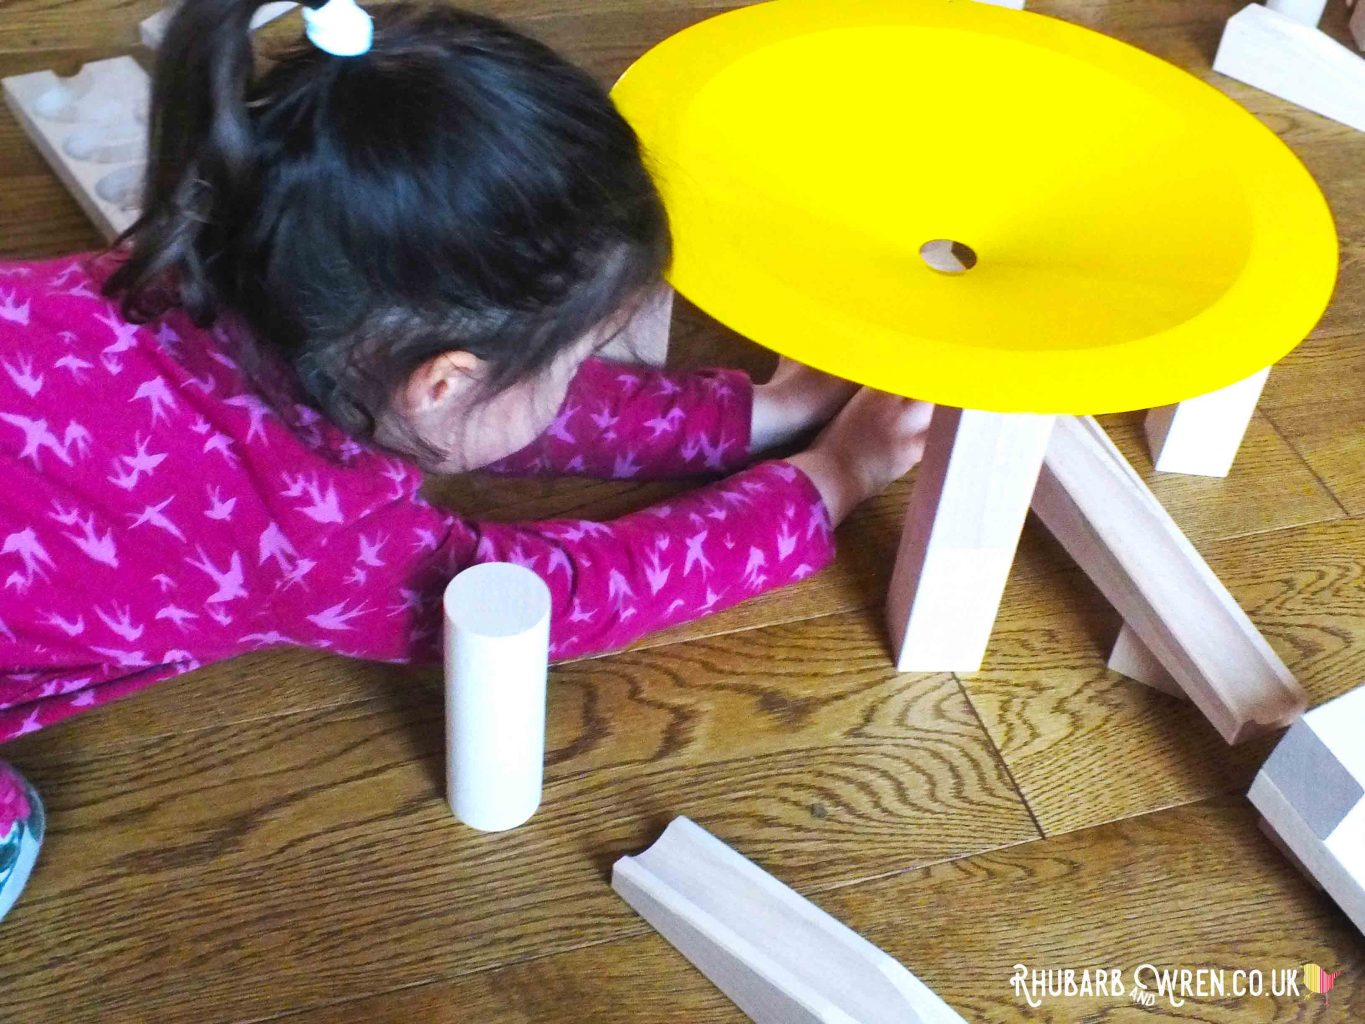 Girl lying down and stretching under whirlpool section to set up HABA wooden marble run